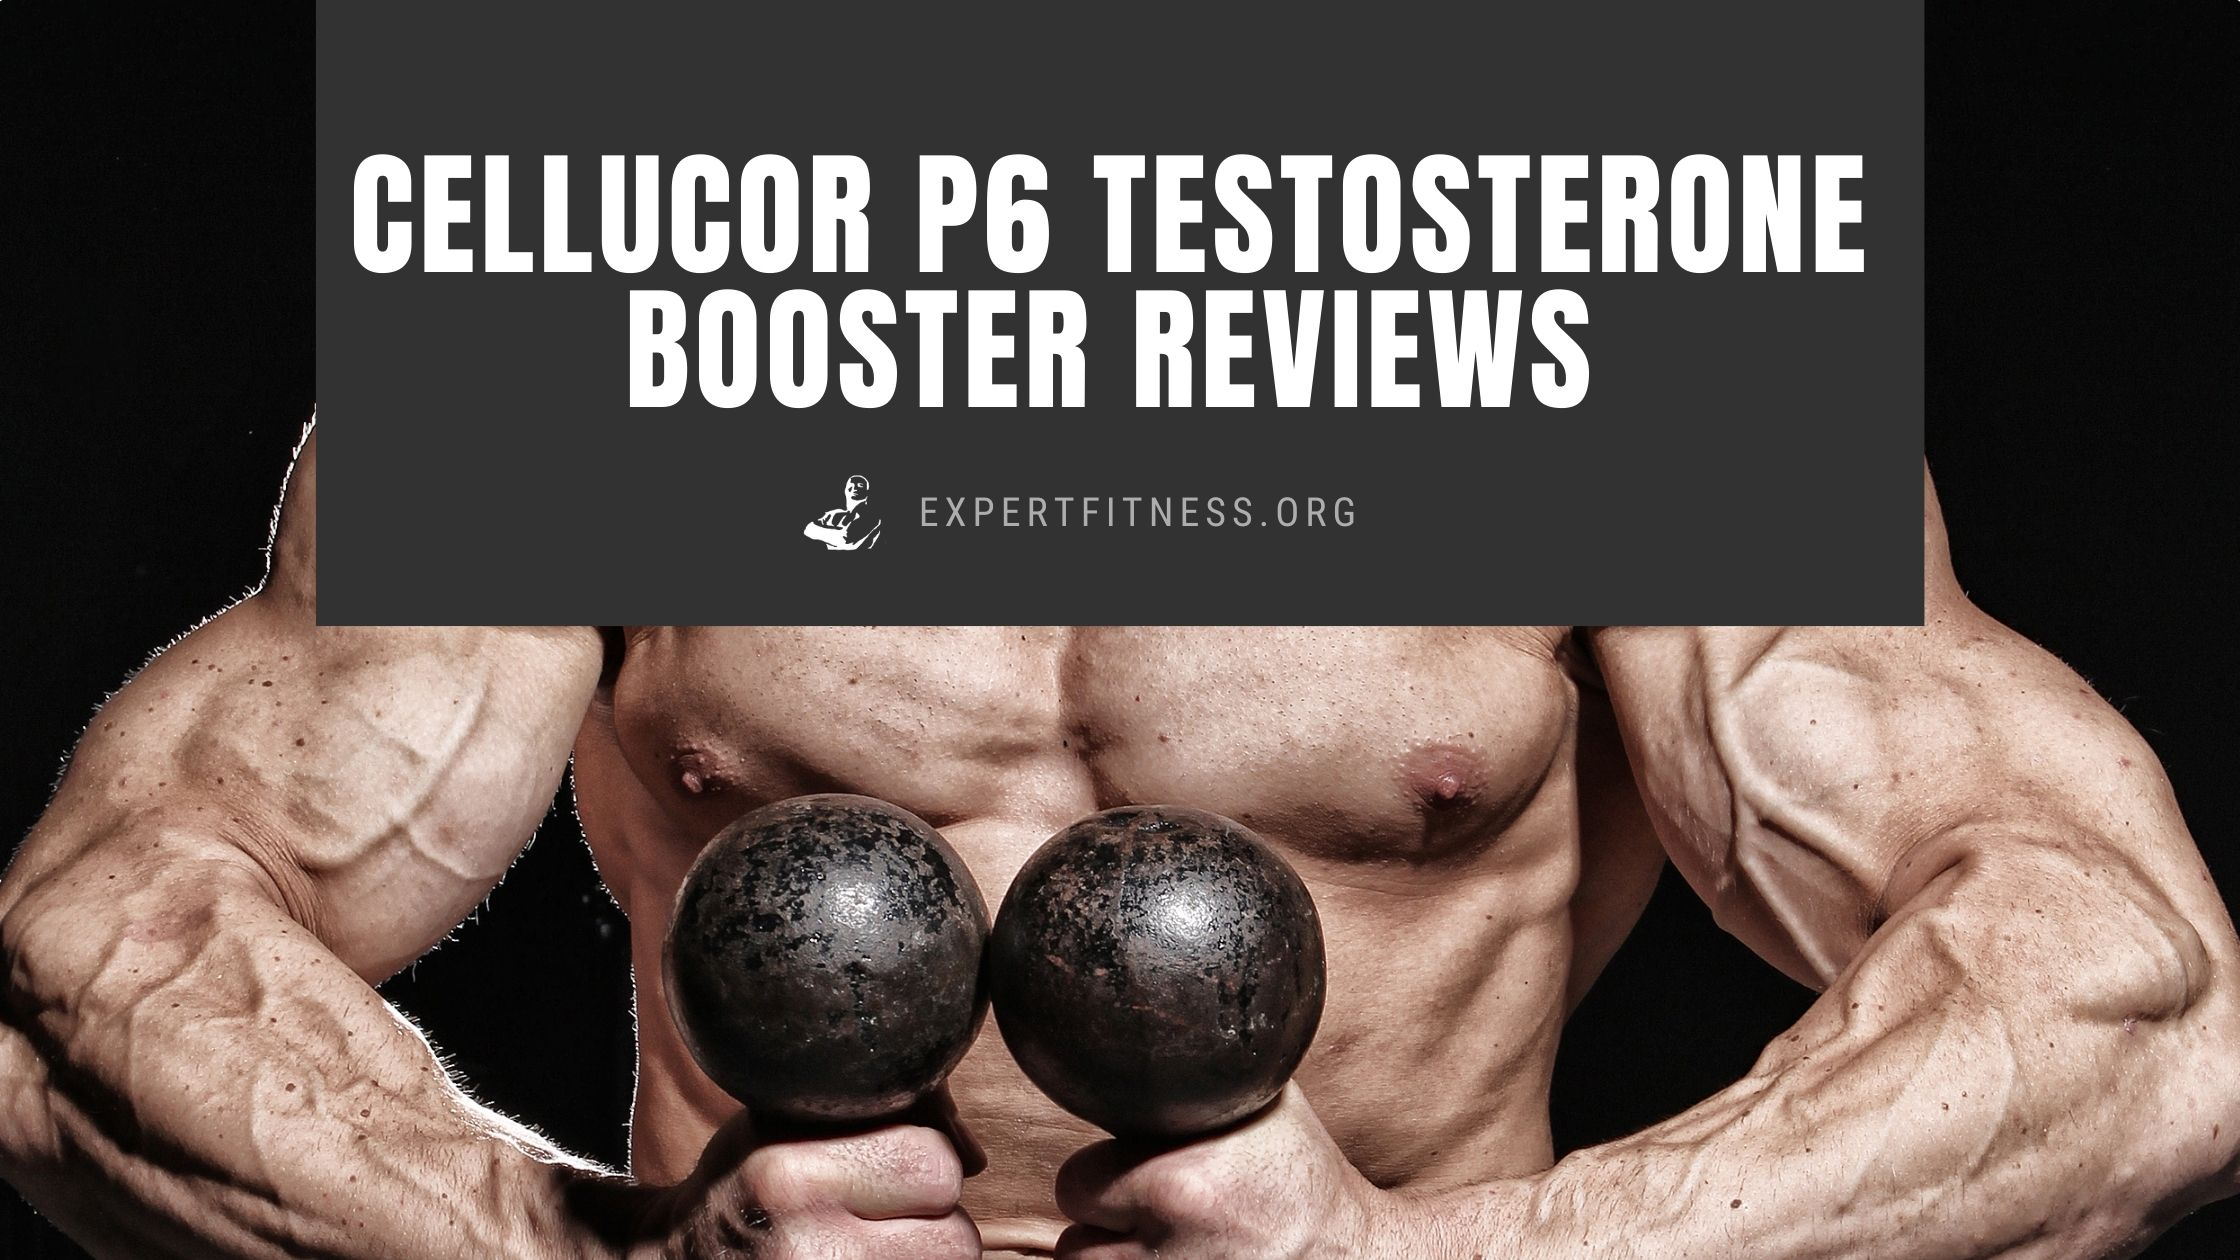 EF-Cellucor-P6-Testosterone-Booster-Reviews